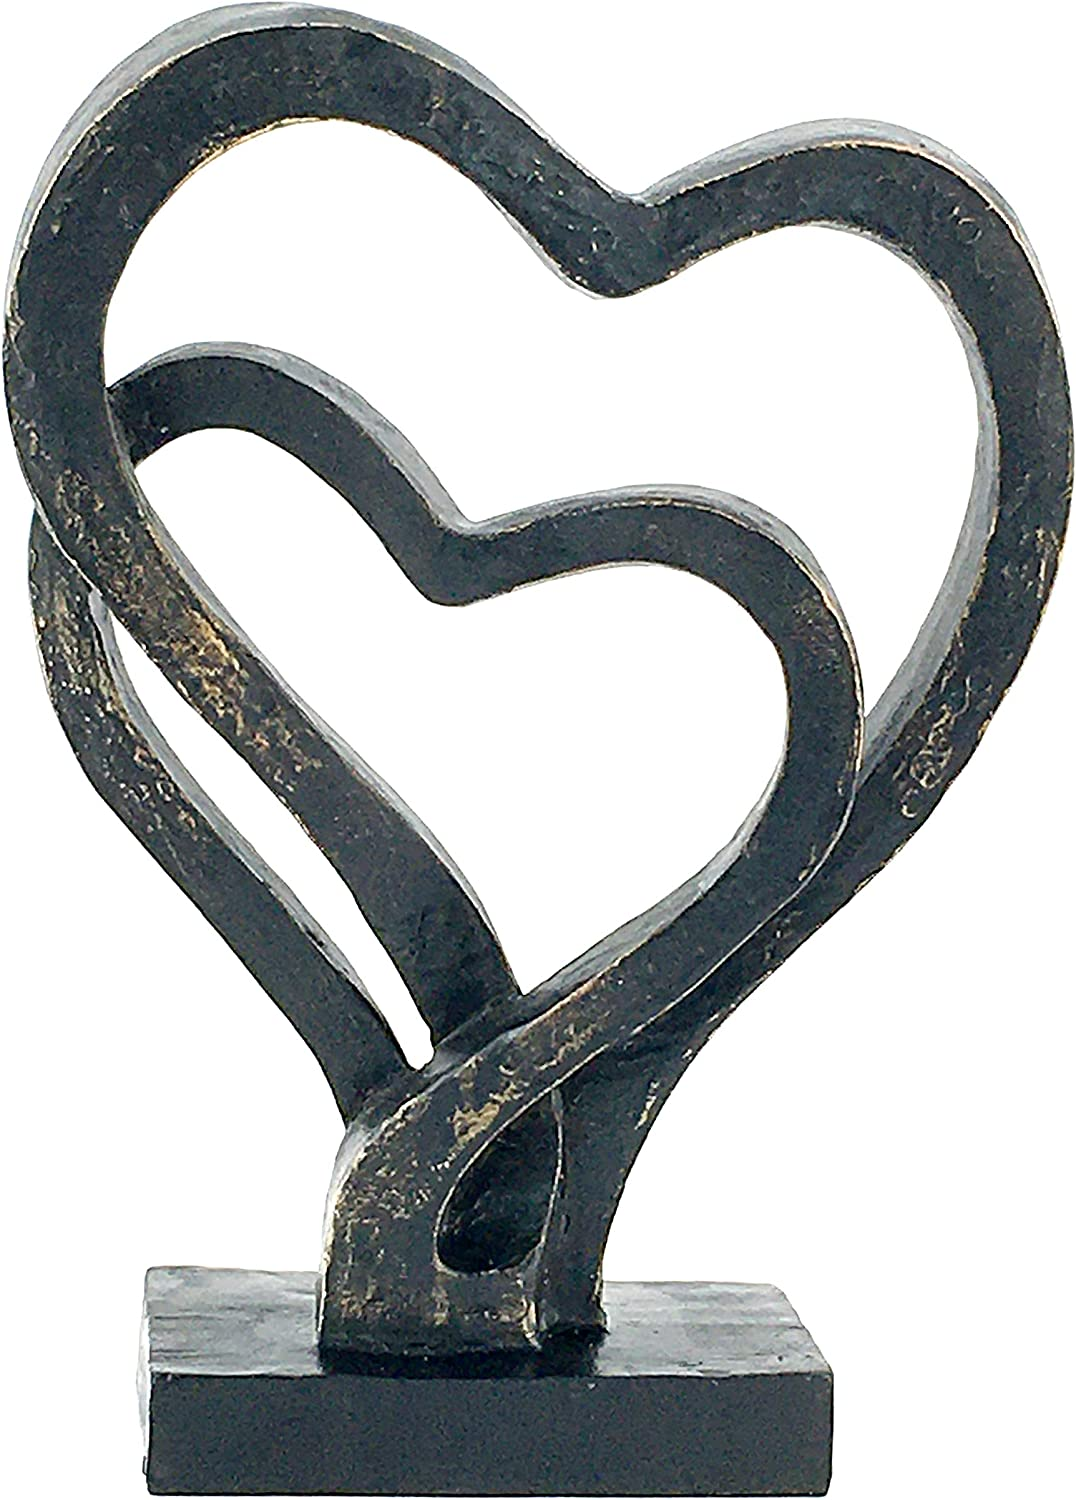 Bellaa 24827 Hearts Sculpture Soulmates Lovers Bond of Marriage Statuettes Always Love 11 Inches